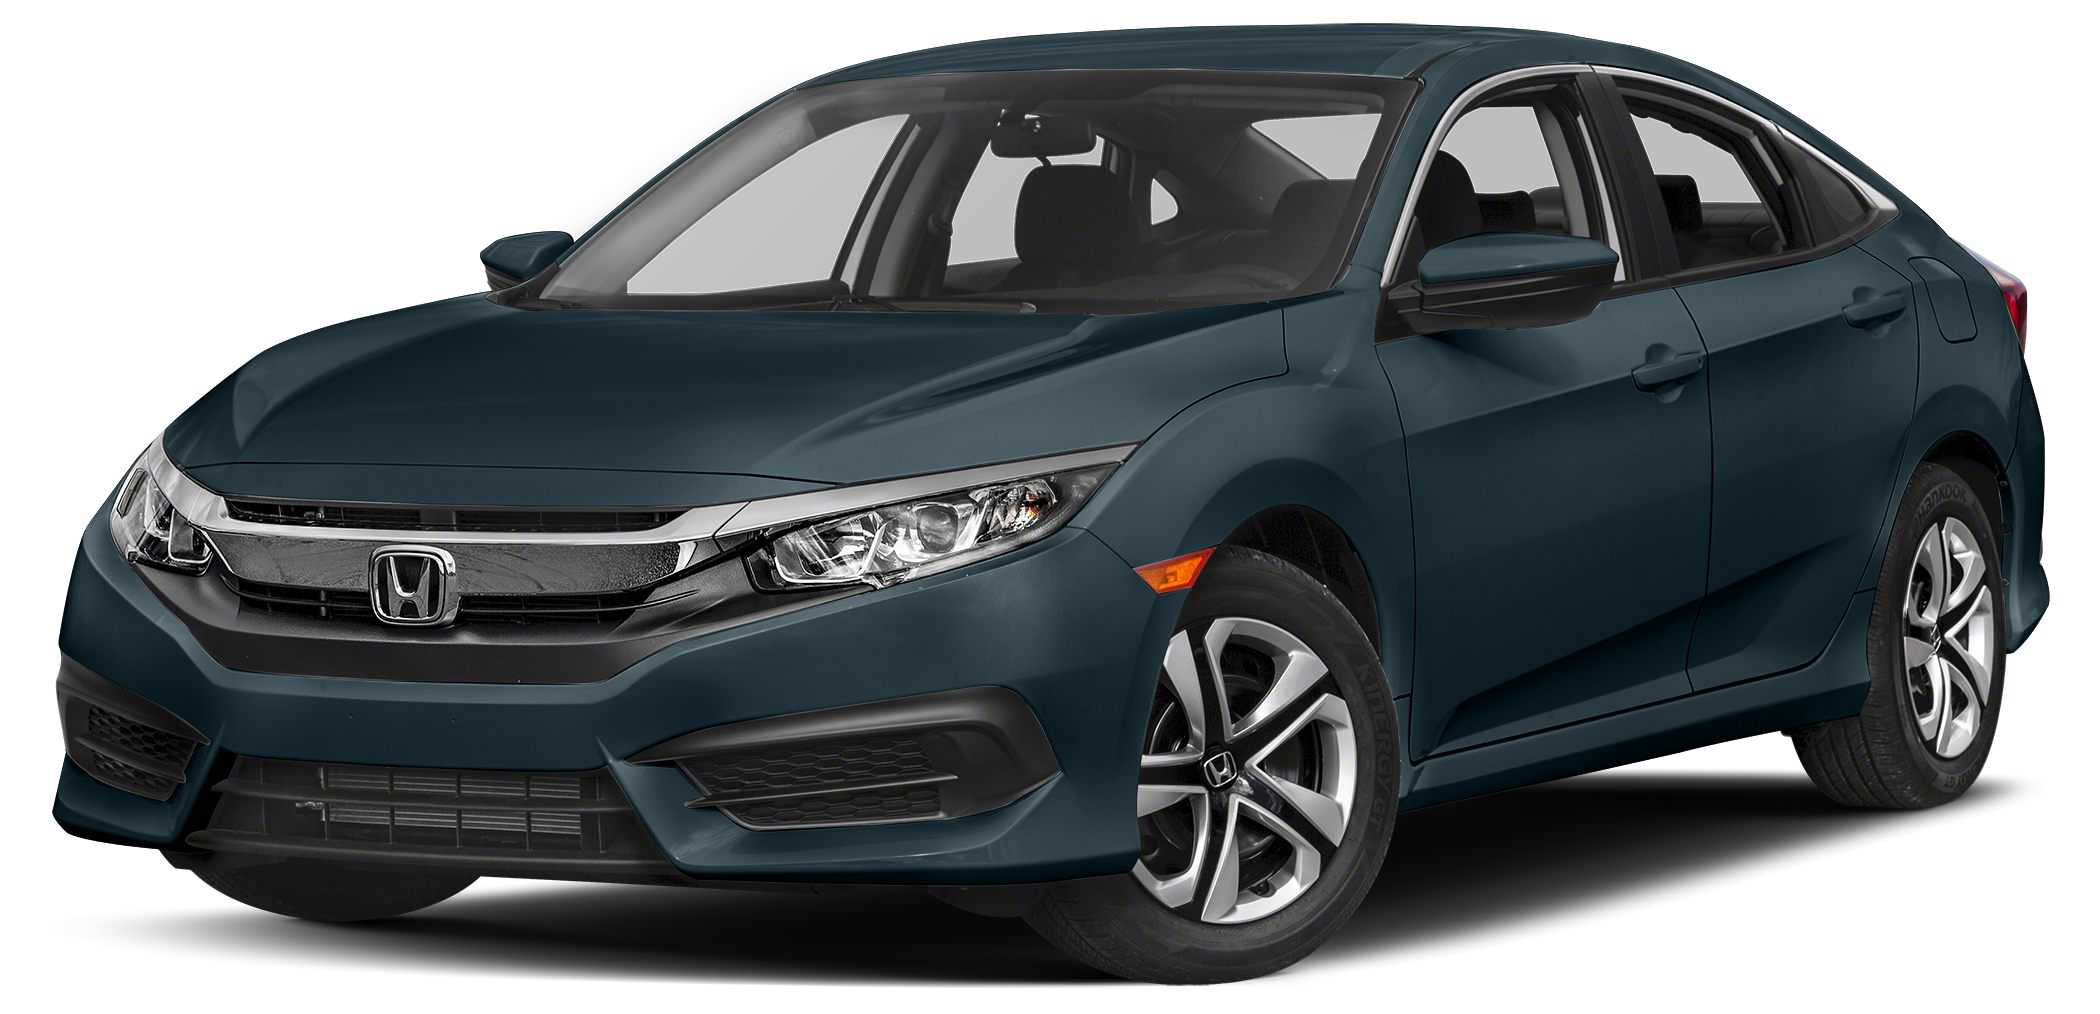 2017 honda civic for sale in waldorf md 2hgfc2f58hh541385 for Honda dealership waldorf md